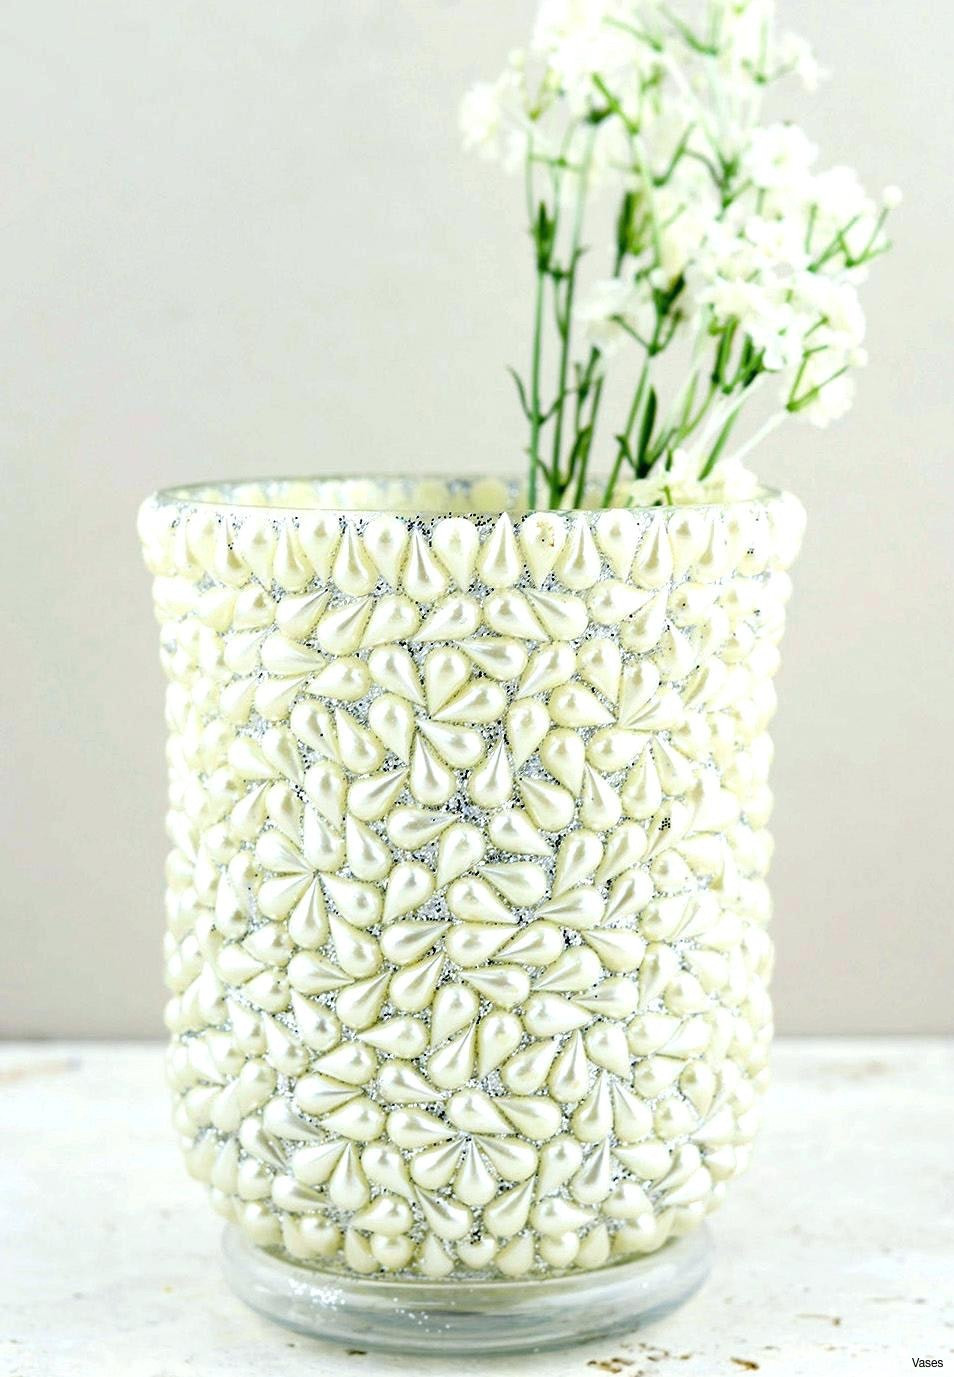 candle vases wholesale of inspiring flower picture holder pets nature wallpaper within glass vase fillers ideas cylinder vases walmart mercury bulkh bulk depot cheap candle holders wholesale los